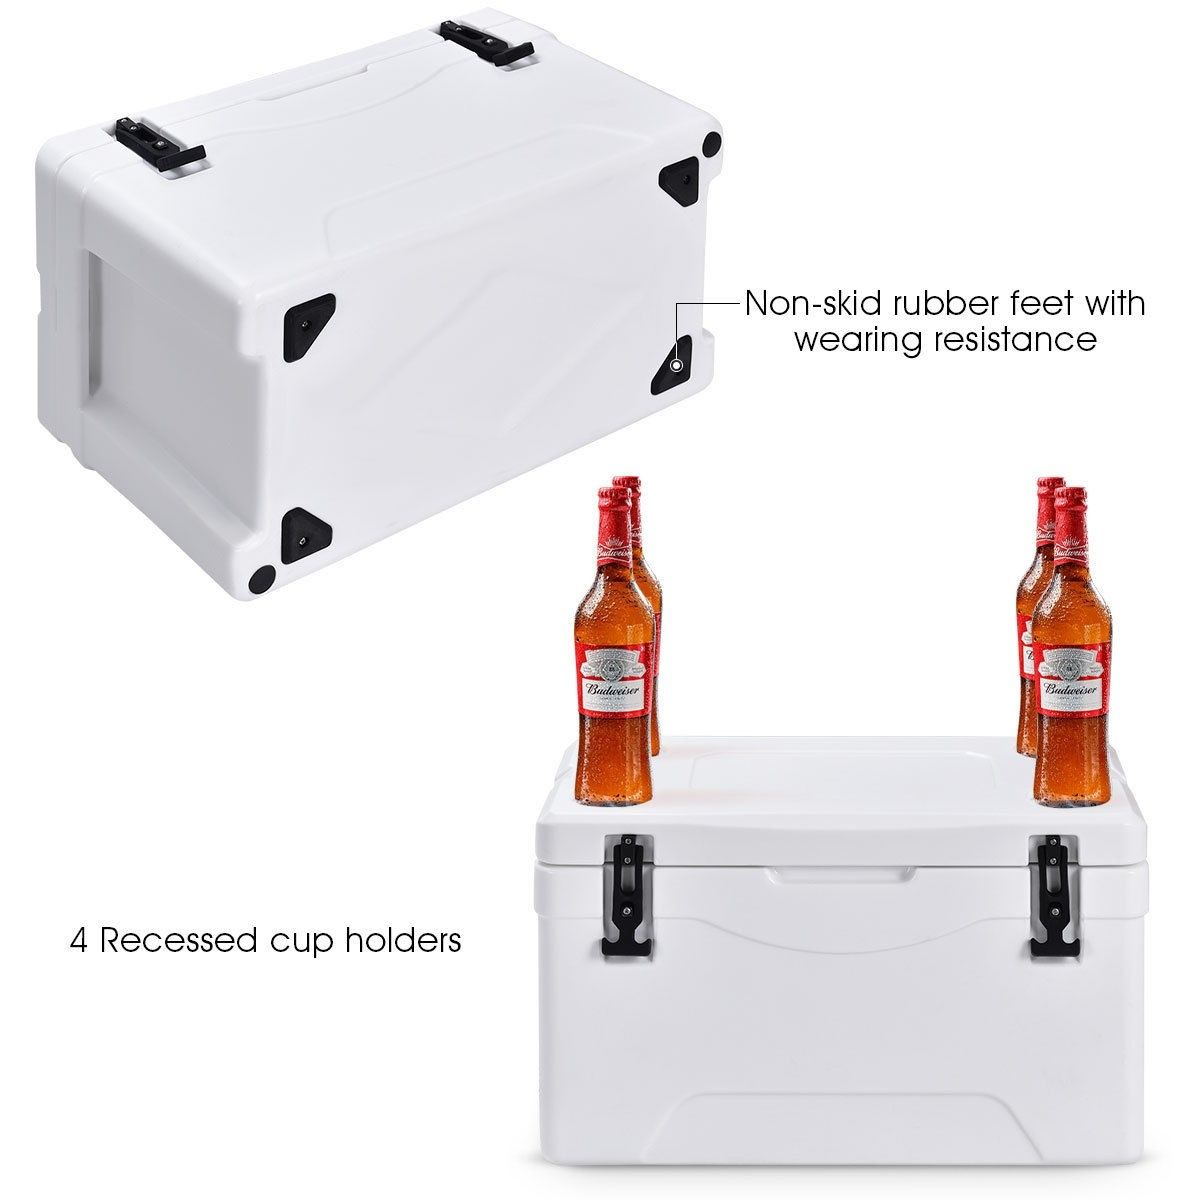 40 Quart Heavy Duty Outdoor Insulated Fishing Hunting Cooler Insulation Thickness Insulation Materials Yeti Type Coolers